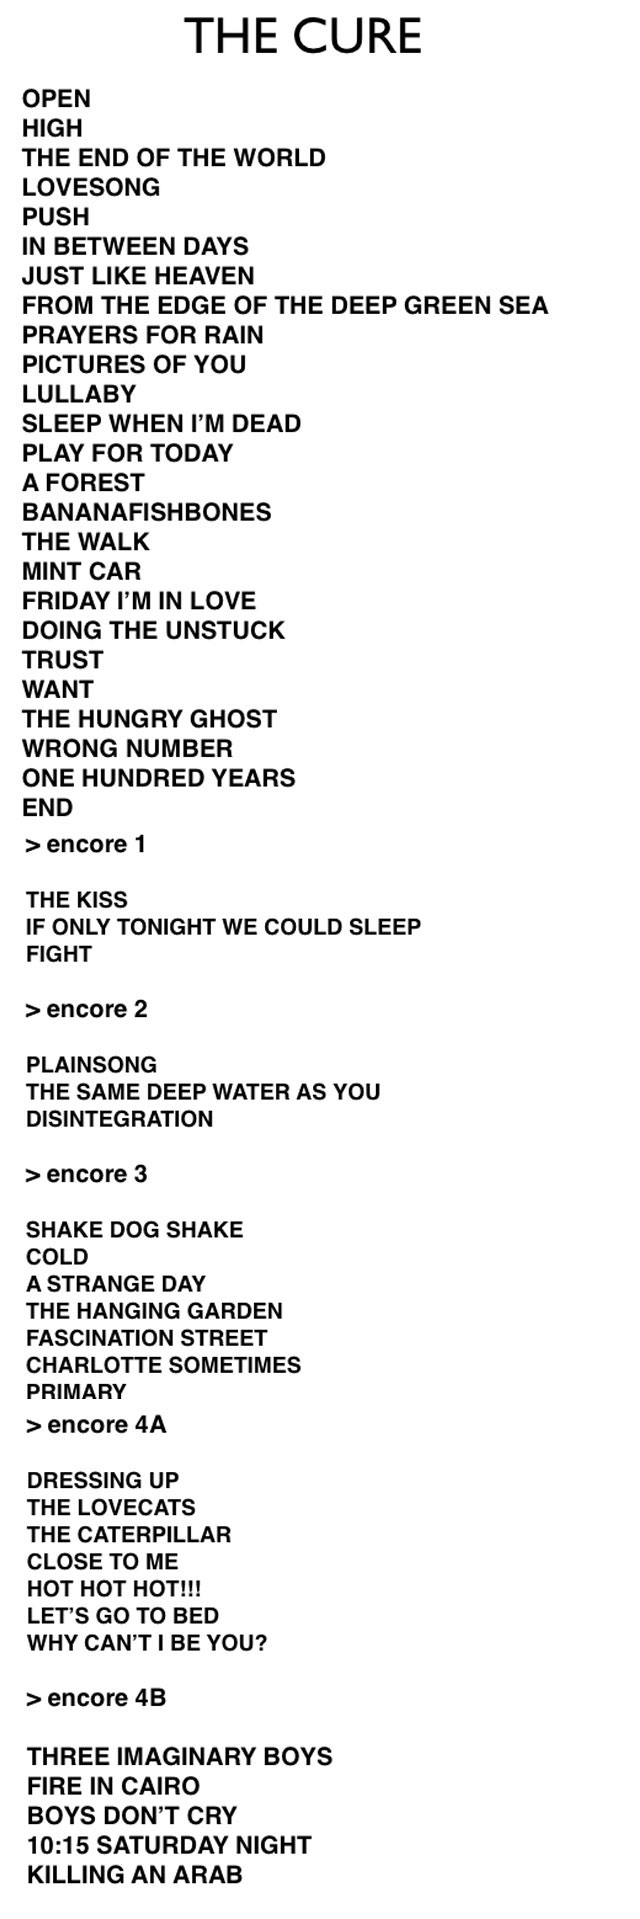 The Cure Mexico Setlist